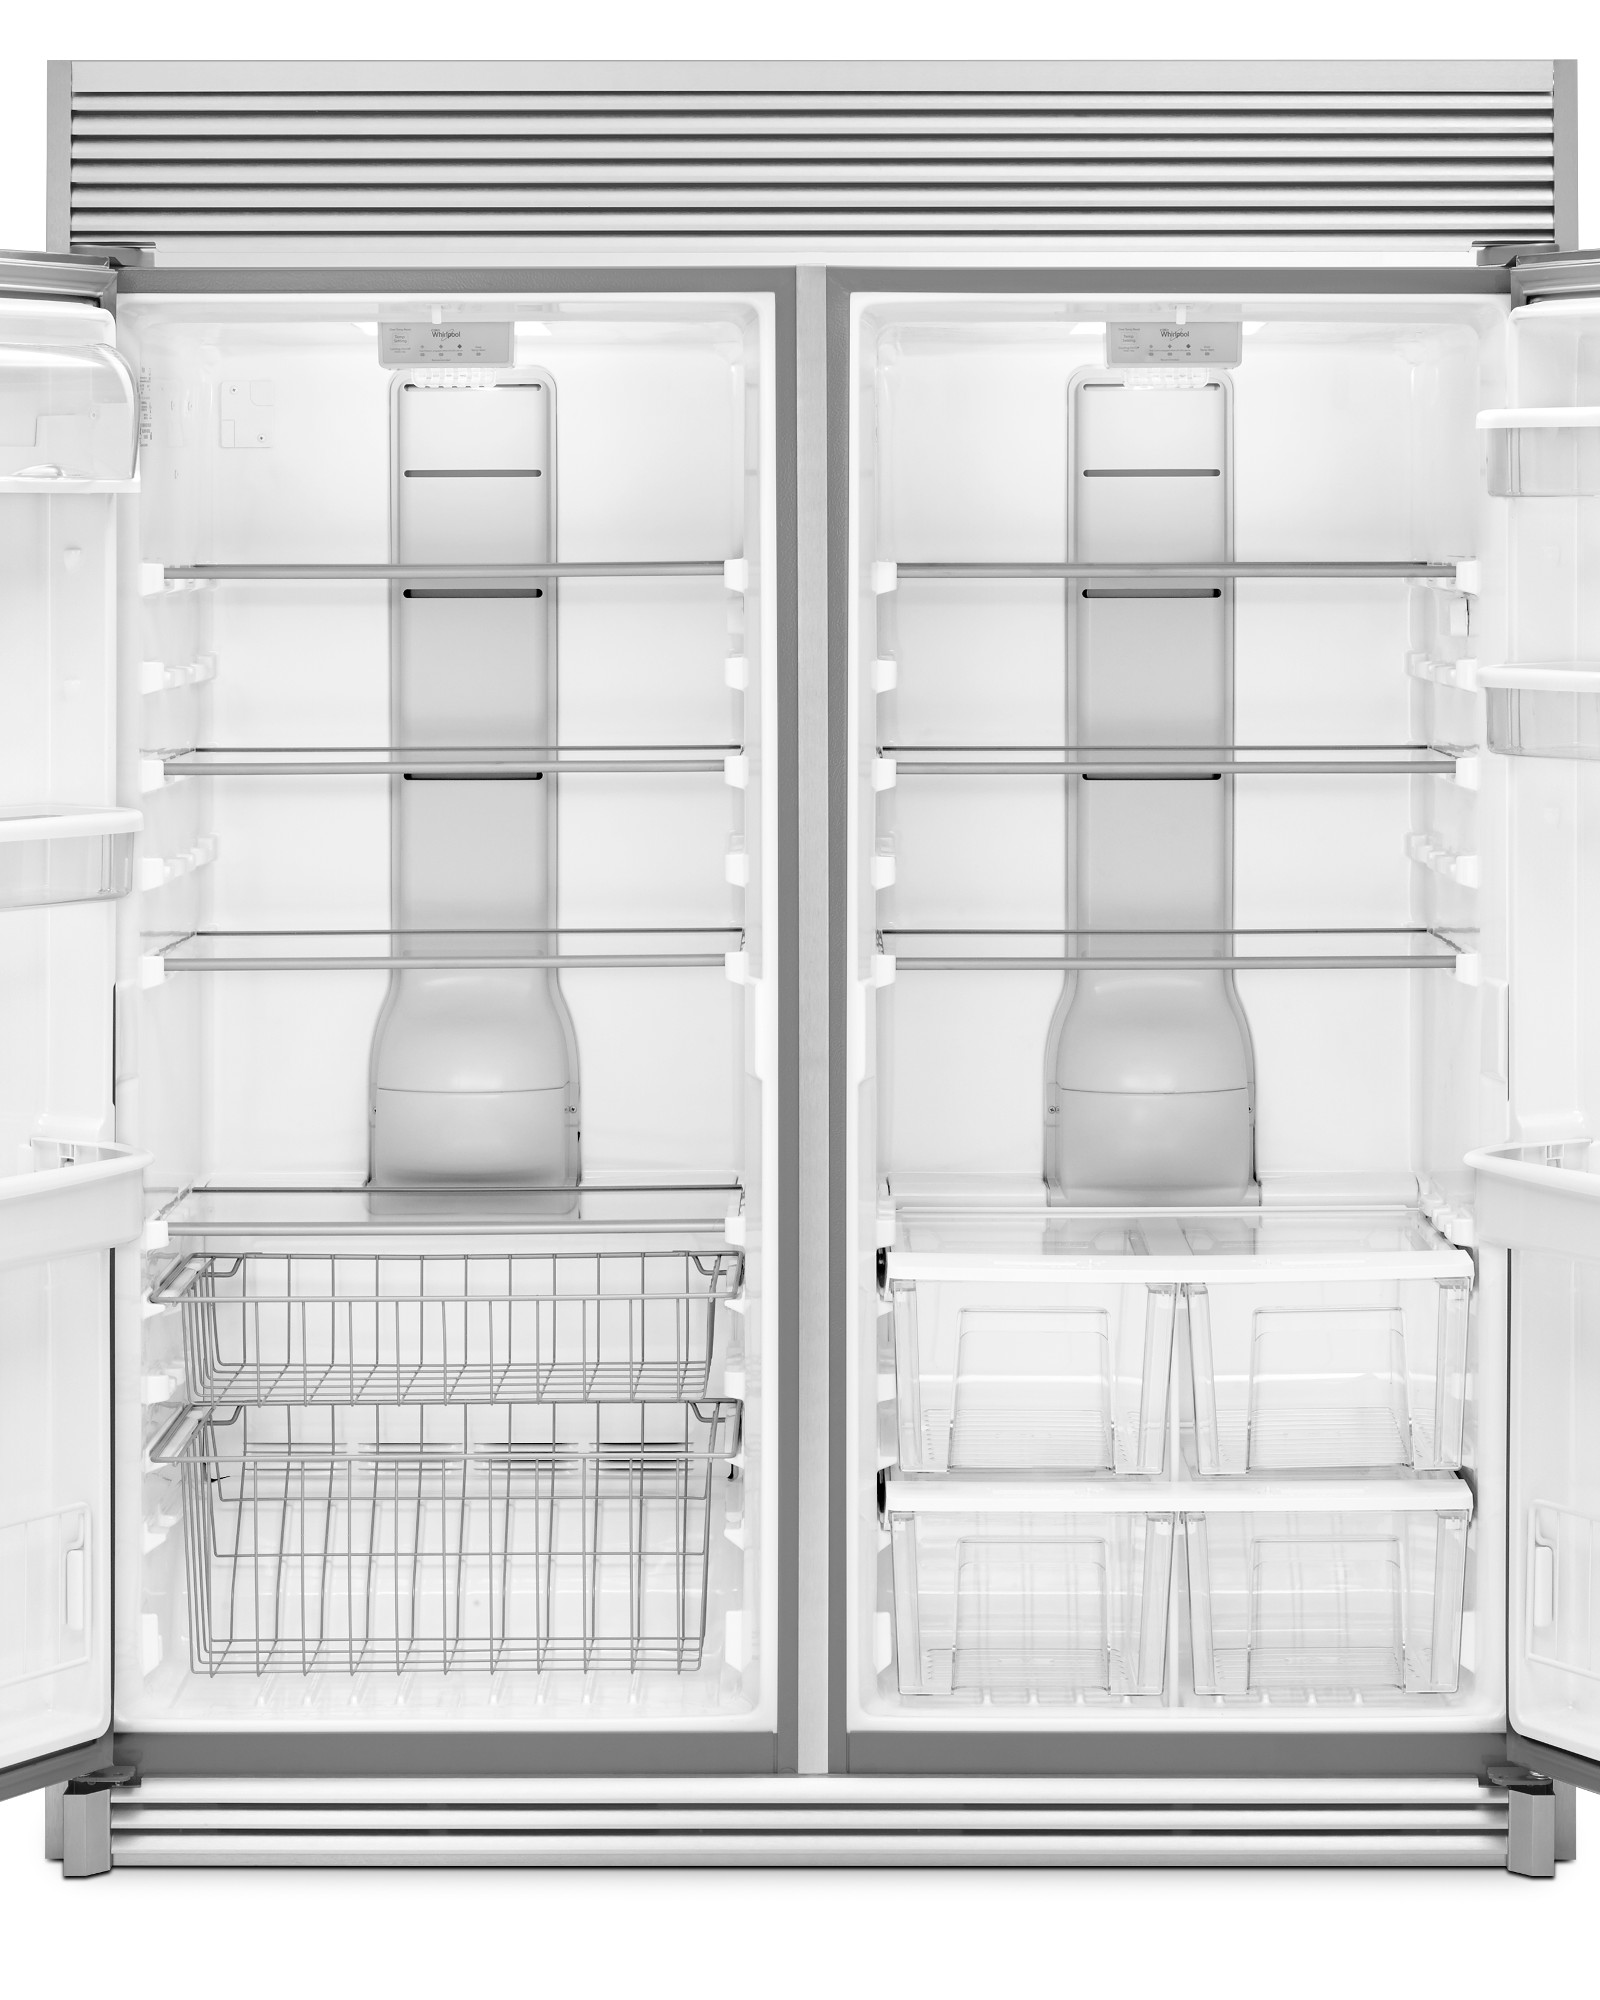 Whirlpool WSR57R18DM 18 cu. ft. SideKicks® Freezerless Refrigerator - Stainless Steel